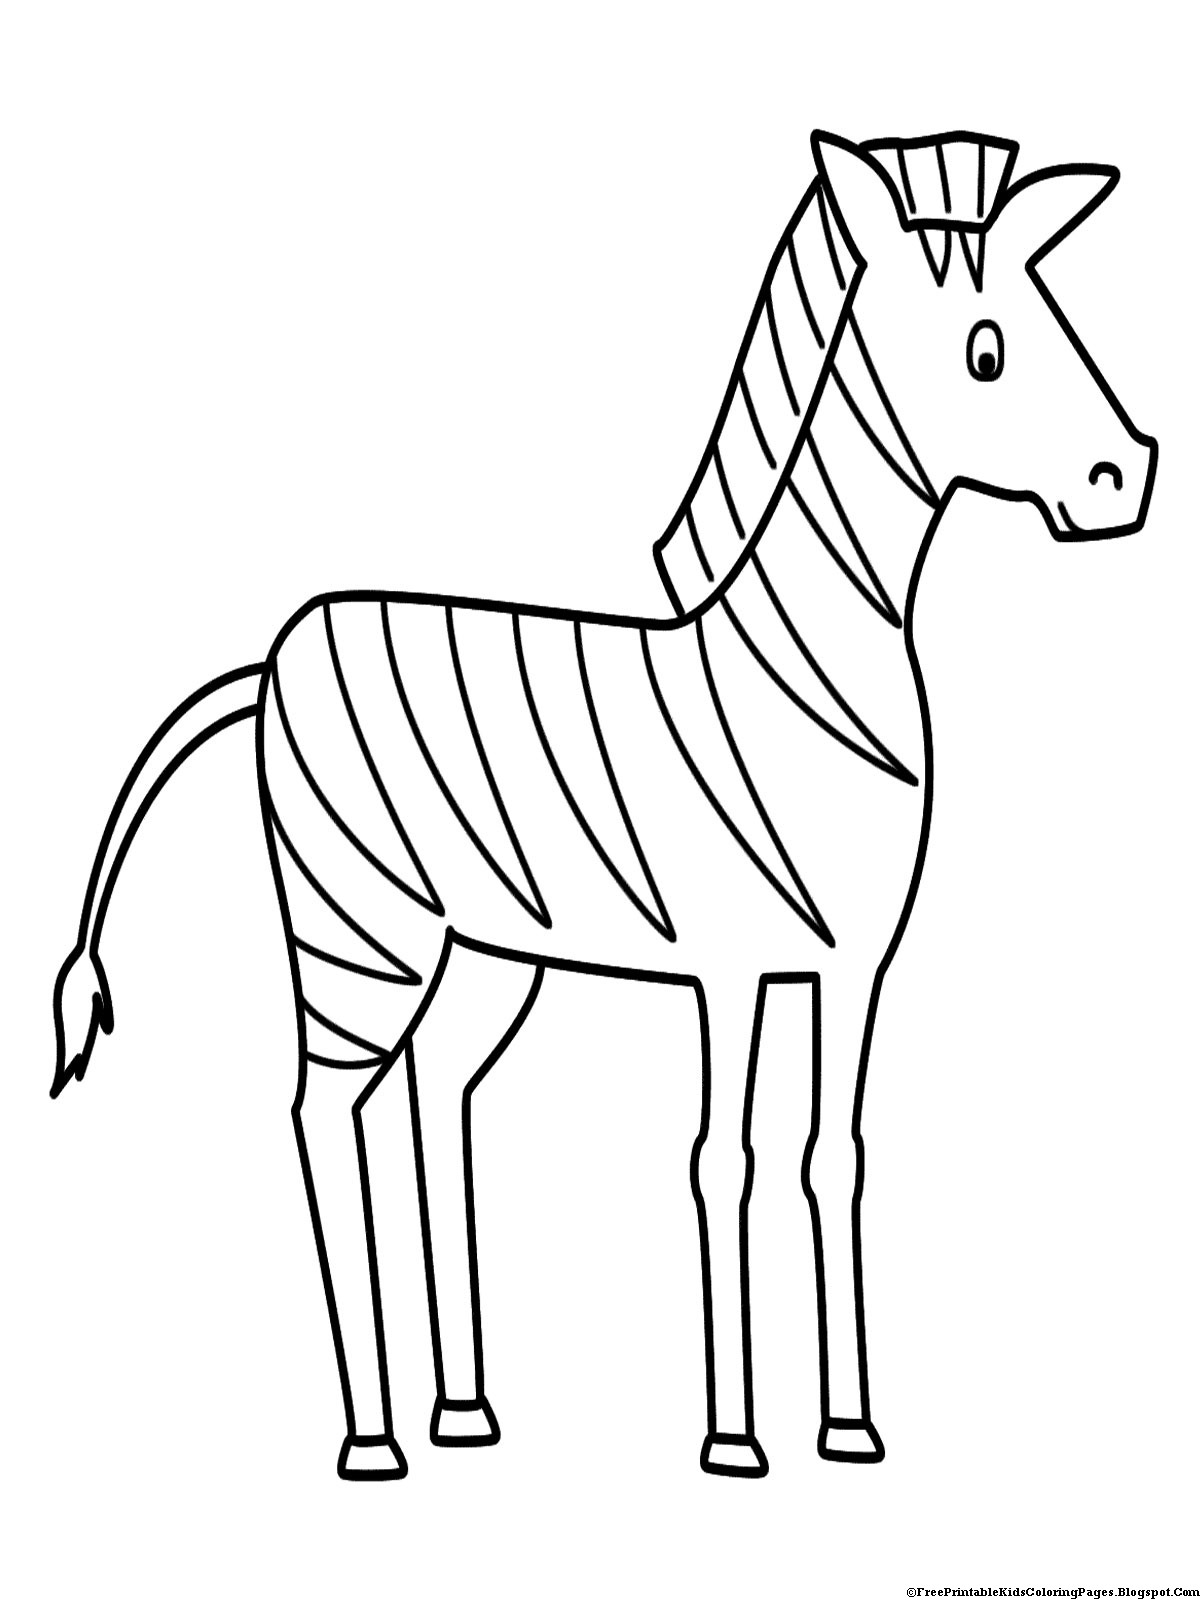 zebra color page free printable zebra coloring pages for kids zebra color page